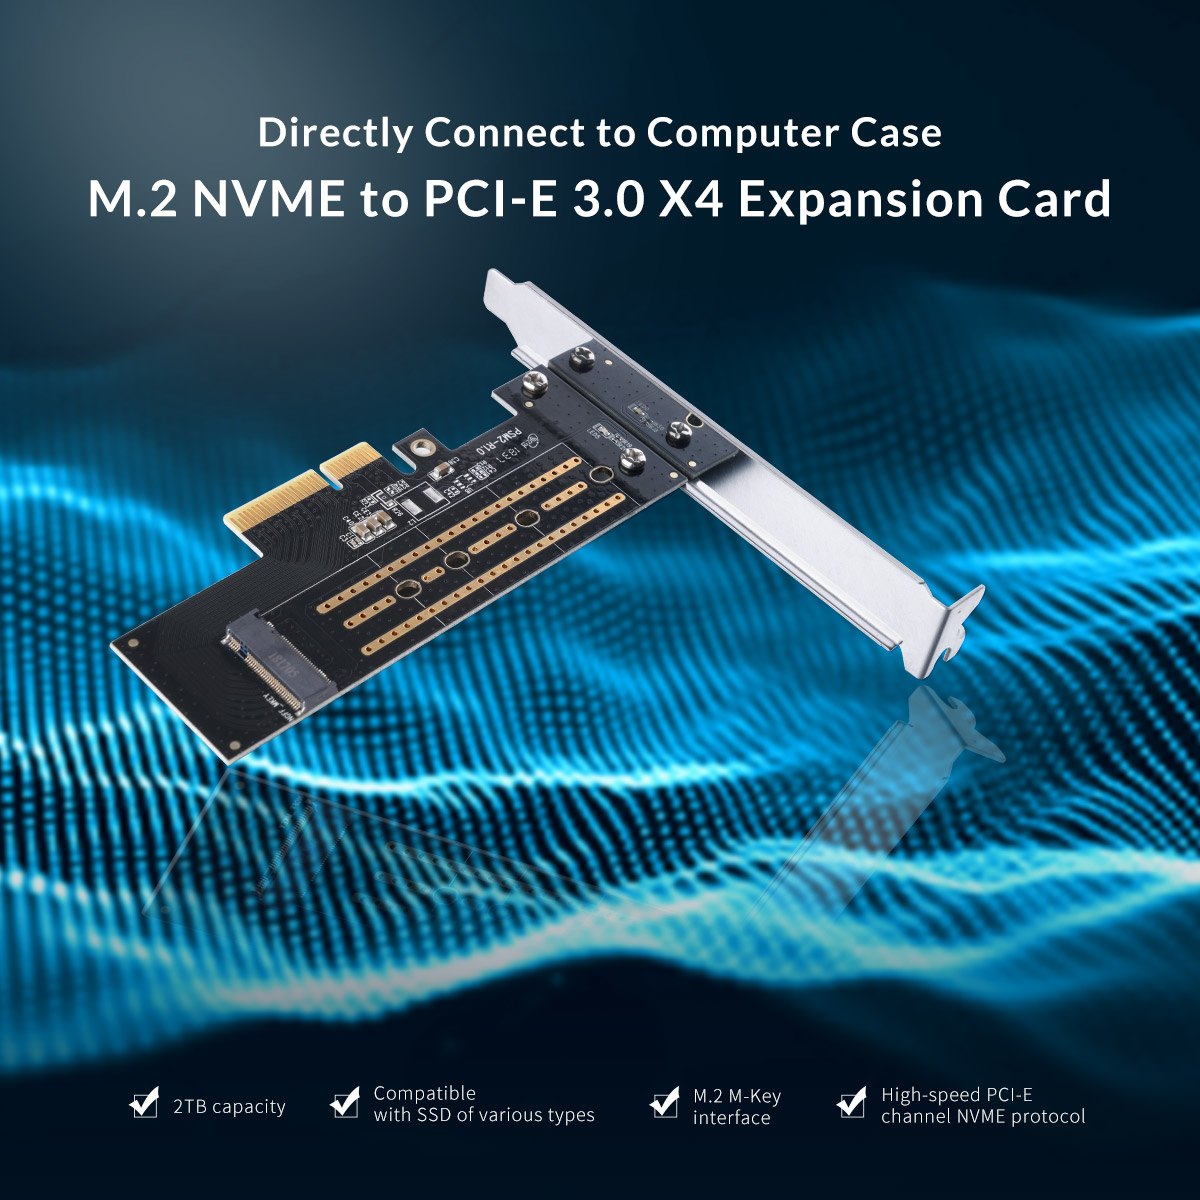 Directly connect to computer case M.2 NVME to PCI-E 3.0 X4 Expansion Card